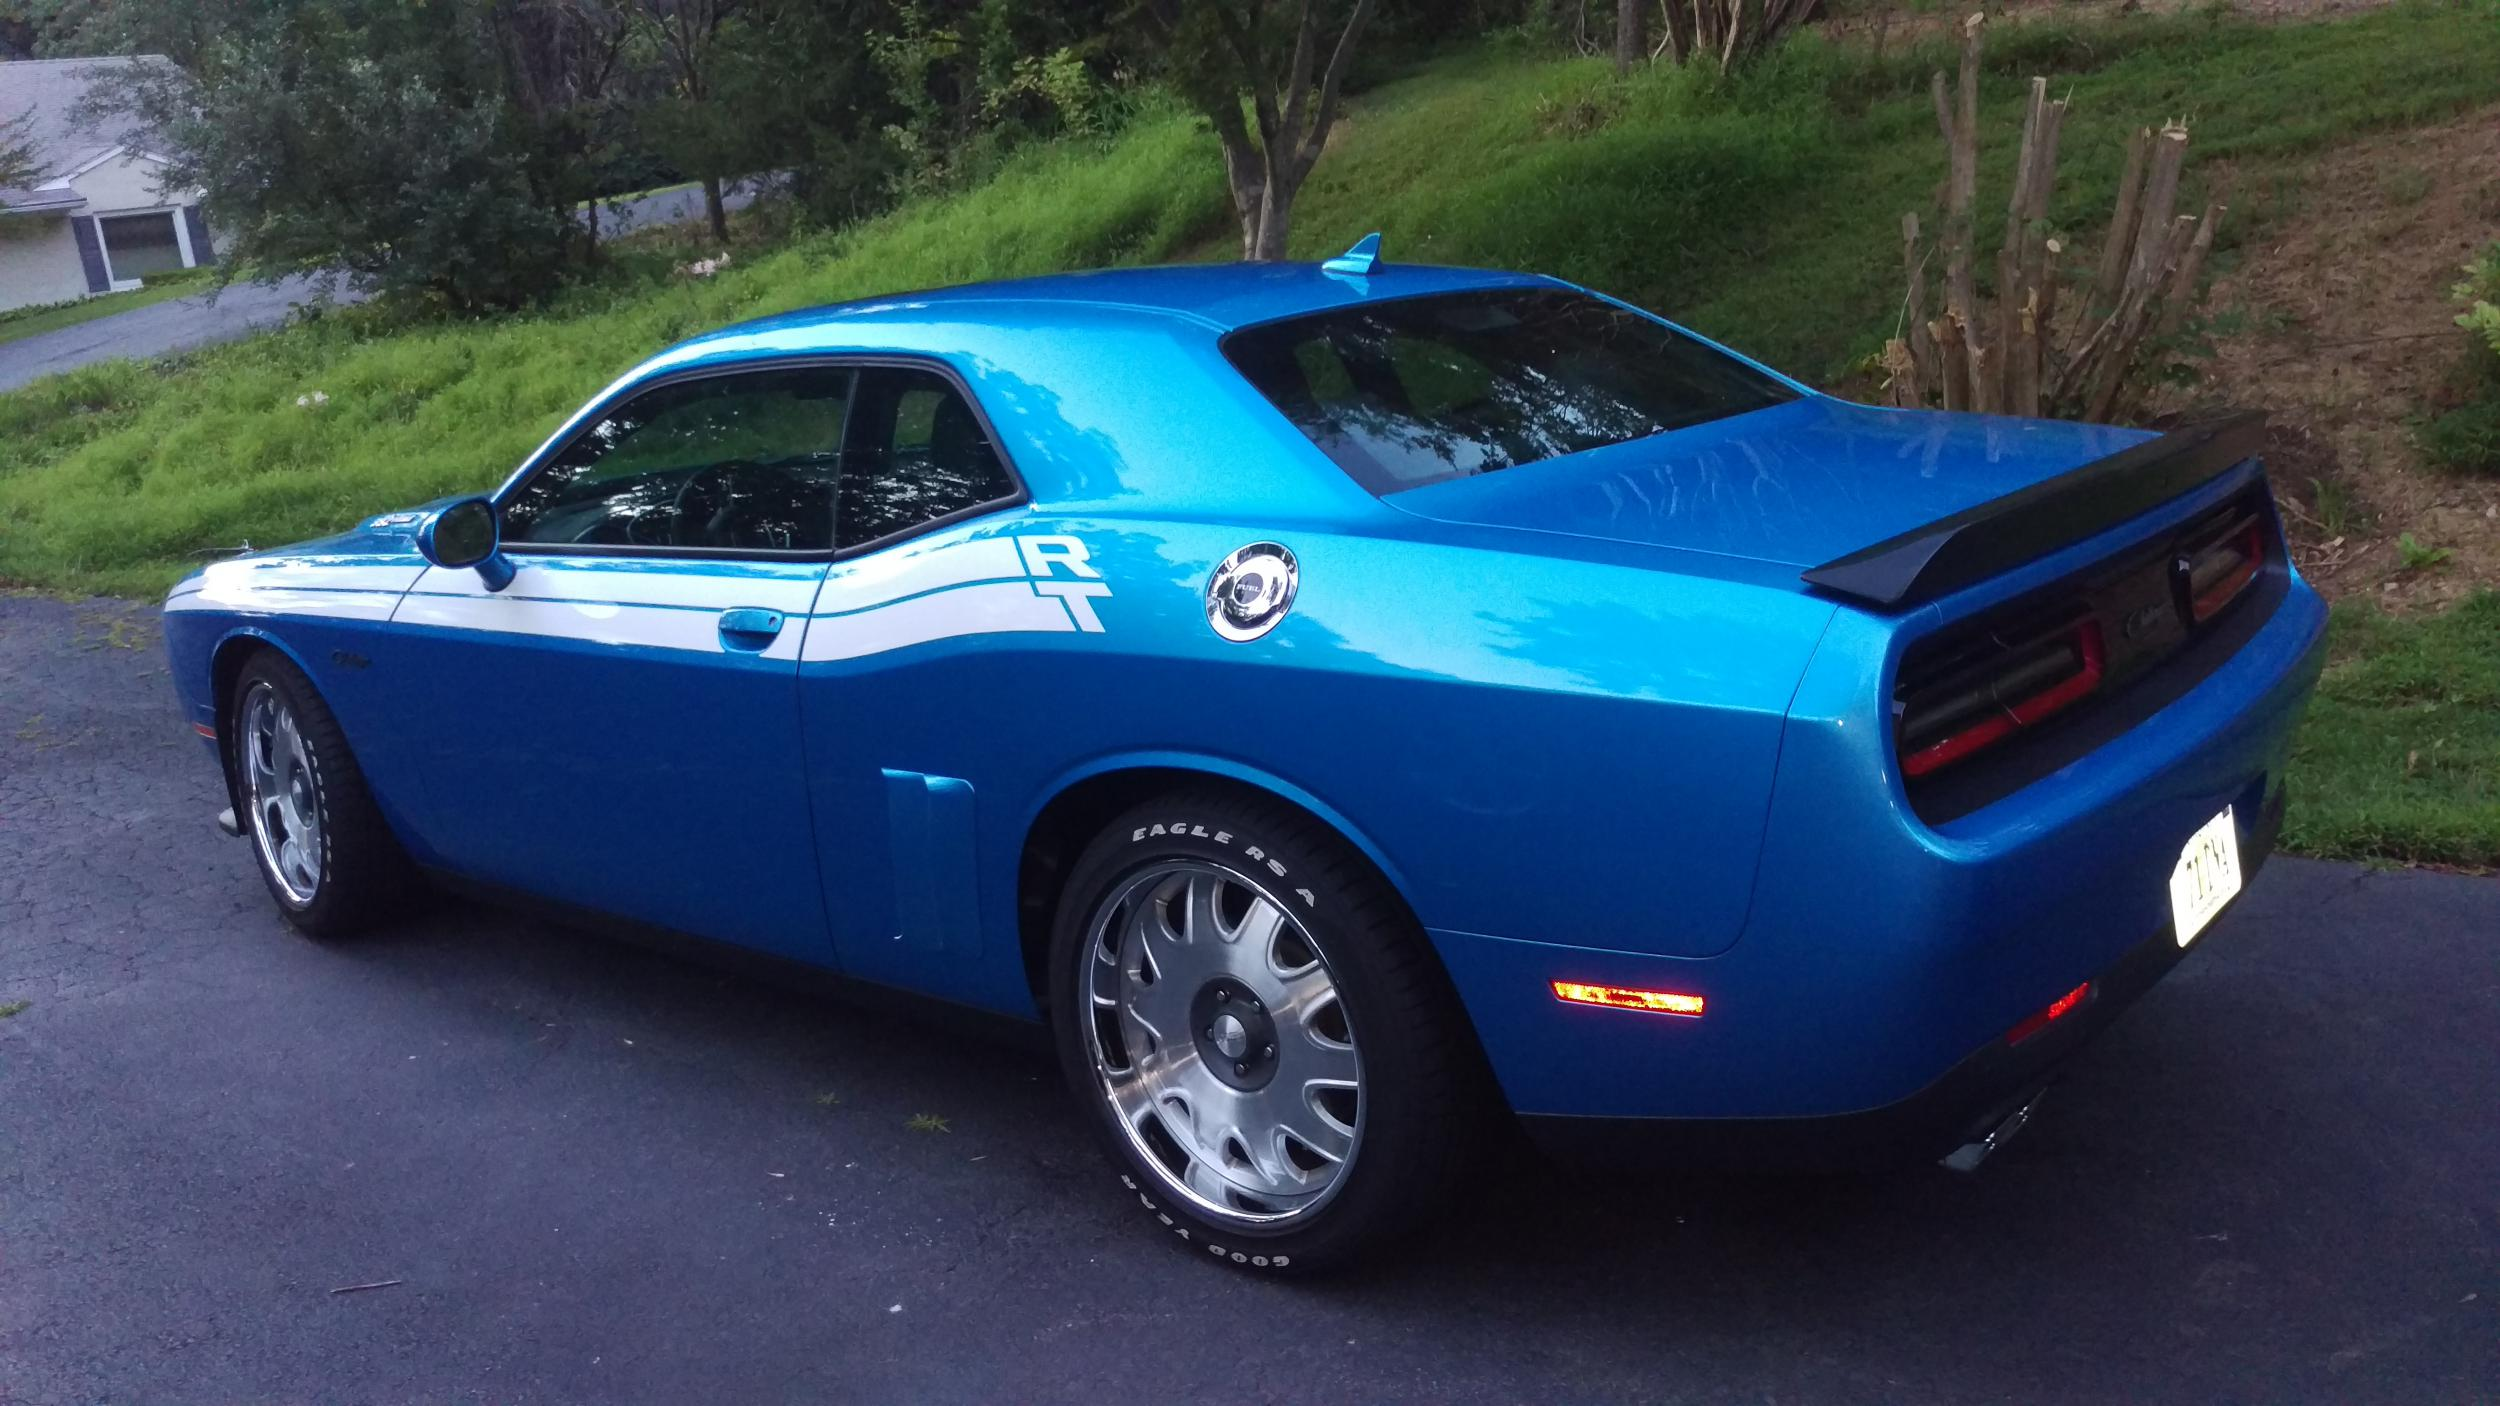 fuse box in dodge challenger fabulous custom wheels for dodge challenger ndash aratorn dodge challenger wheels